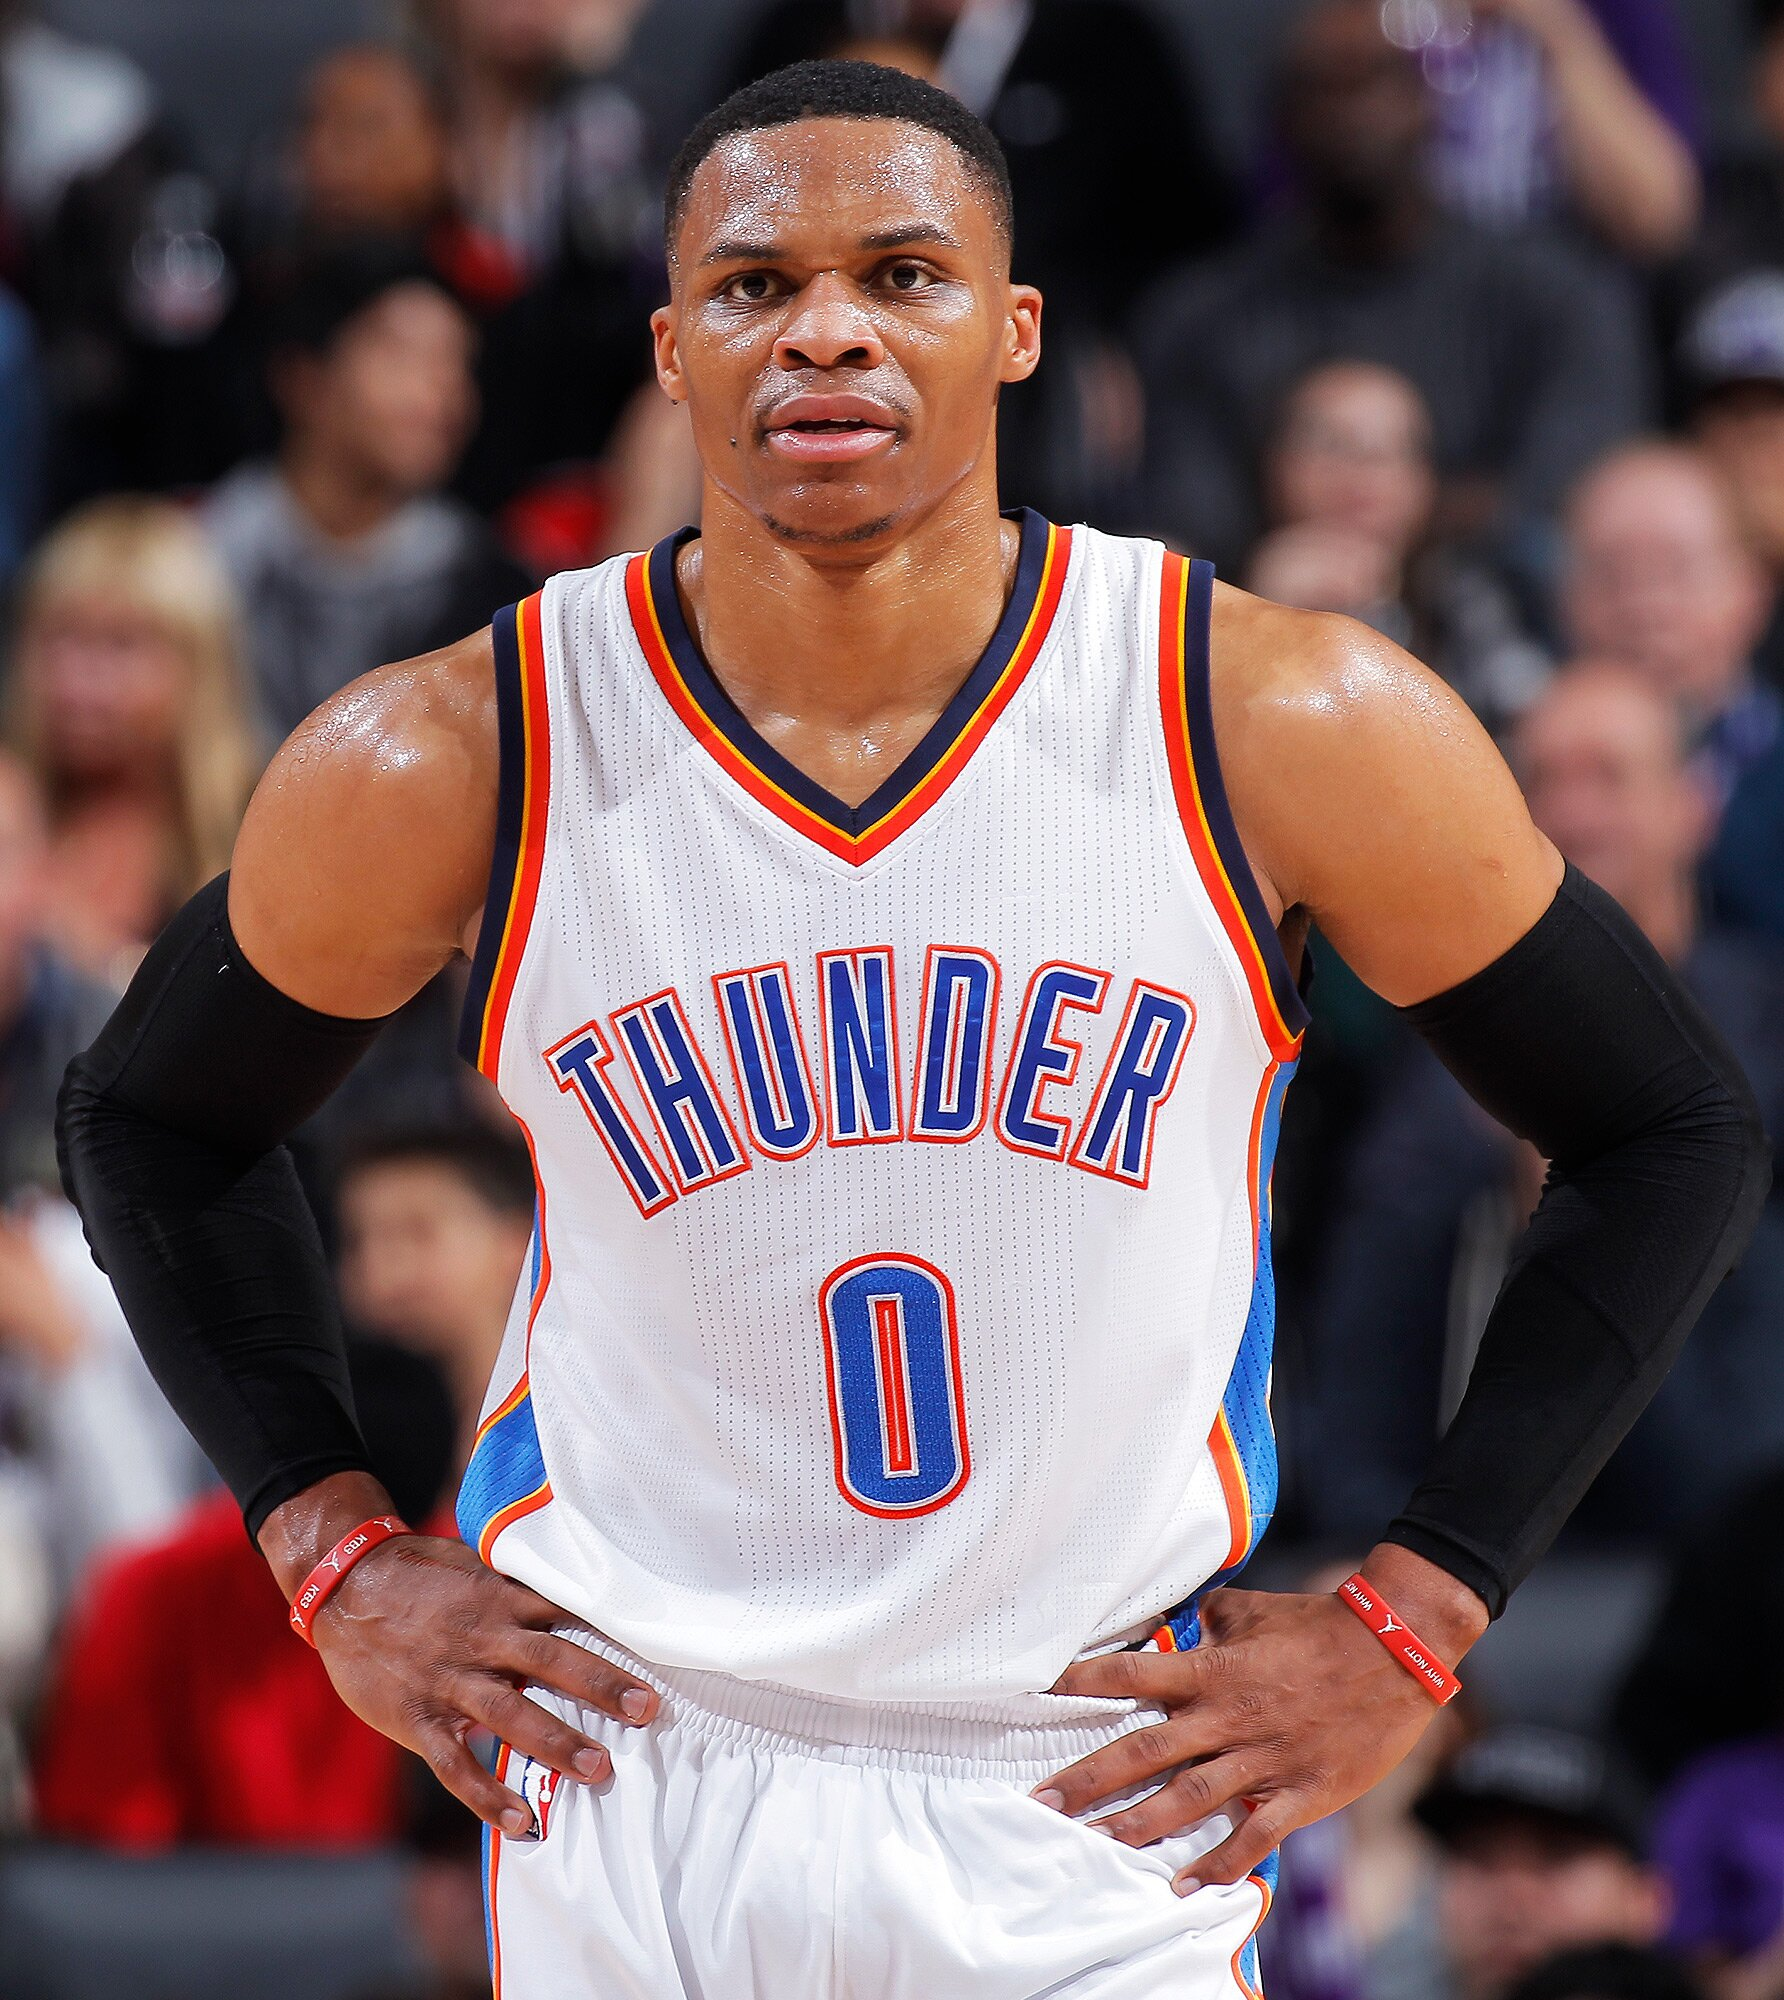 Jazz Fans Hope to Raise $25K After Russell Westbrook Fine | PEOPLE.com